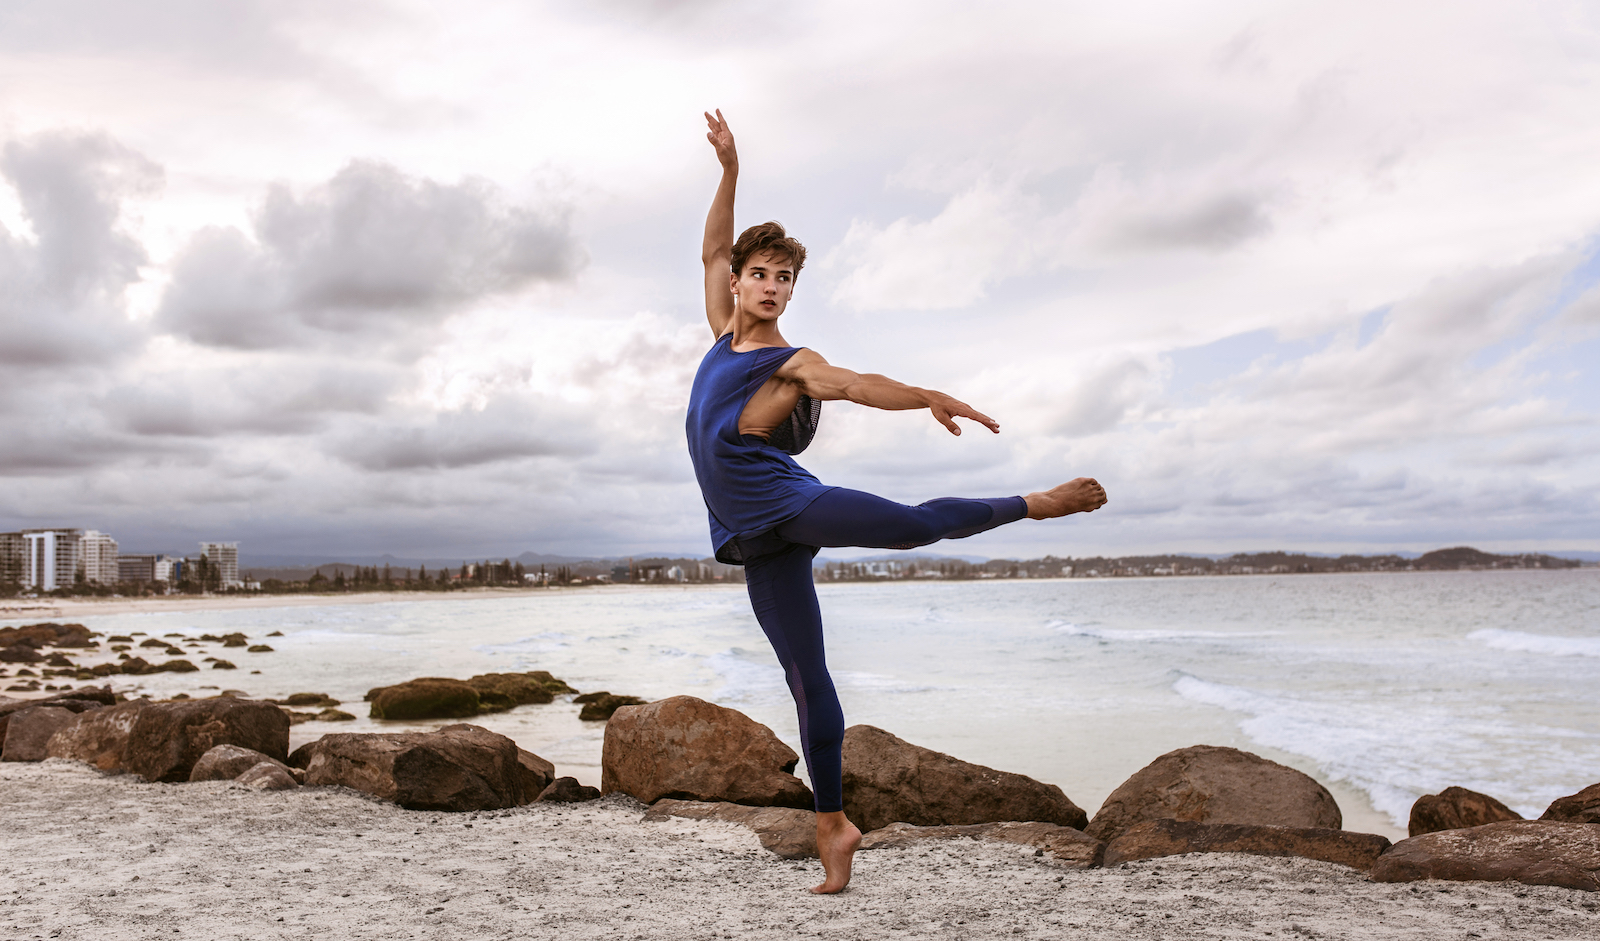 Joel wears the  Aero Singlet  and  Alpha Leggings  from Energetiks  CODA Collection